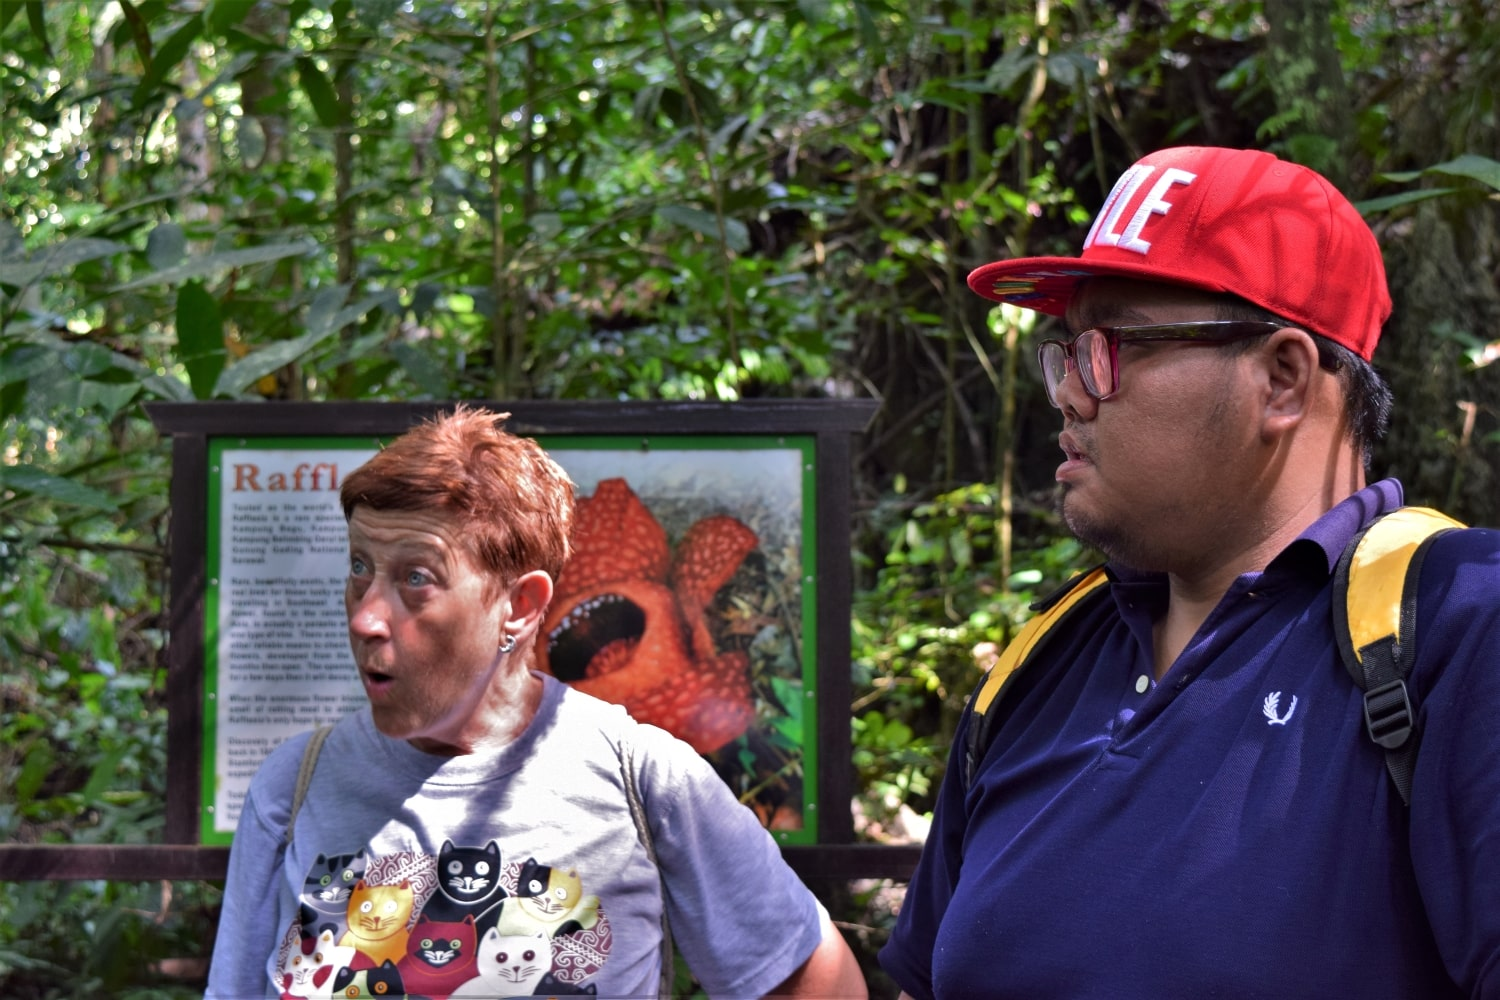 Begu Rafflesia Site features the rare Rafflesia flower in Kuching with Backyard Tour Malaysia